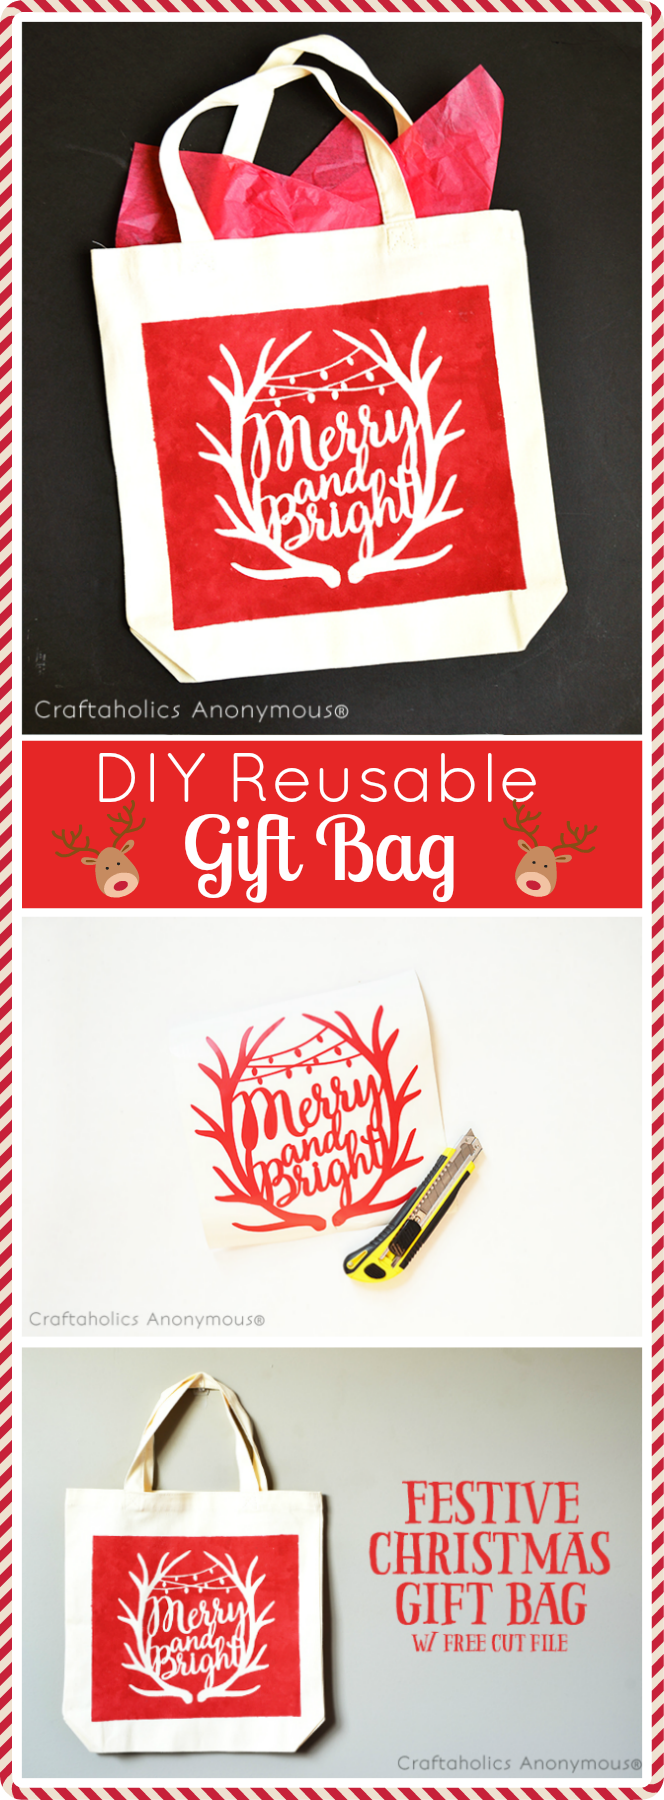 DIY Gift Bag with Printed Glitter Flowers |White Christmas Diy Gift Bags